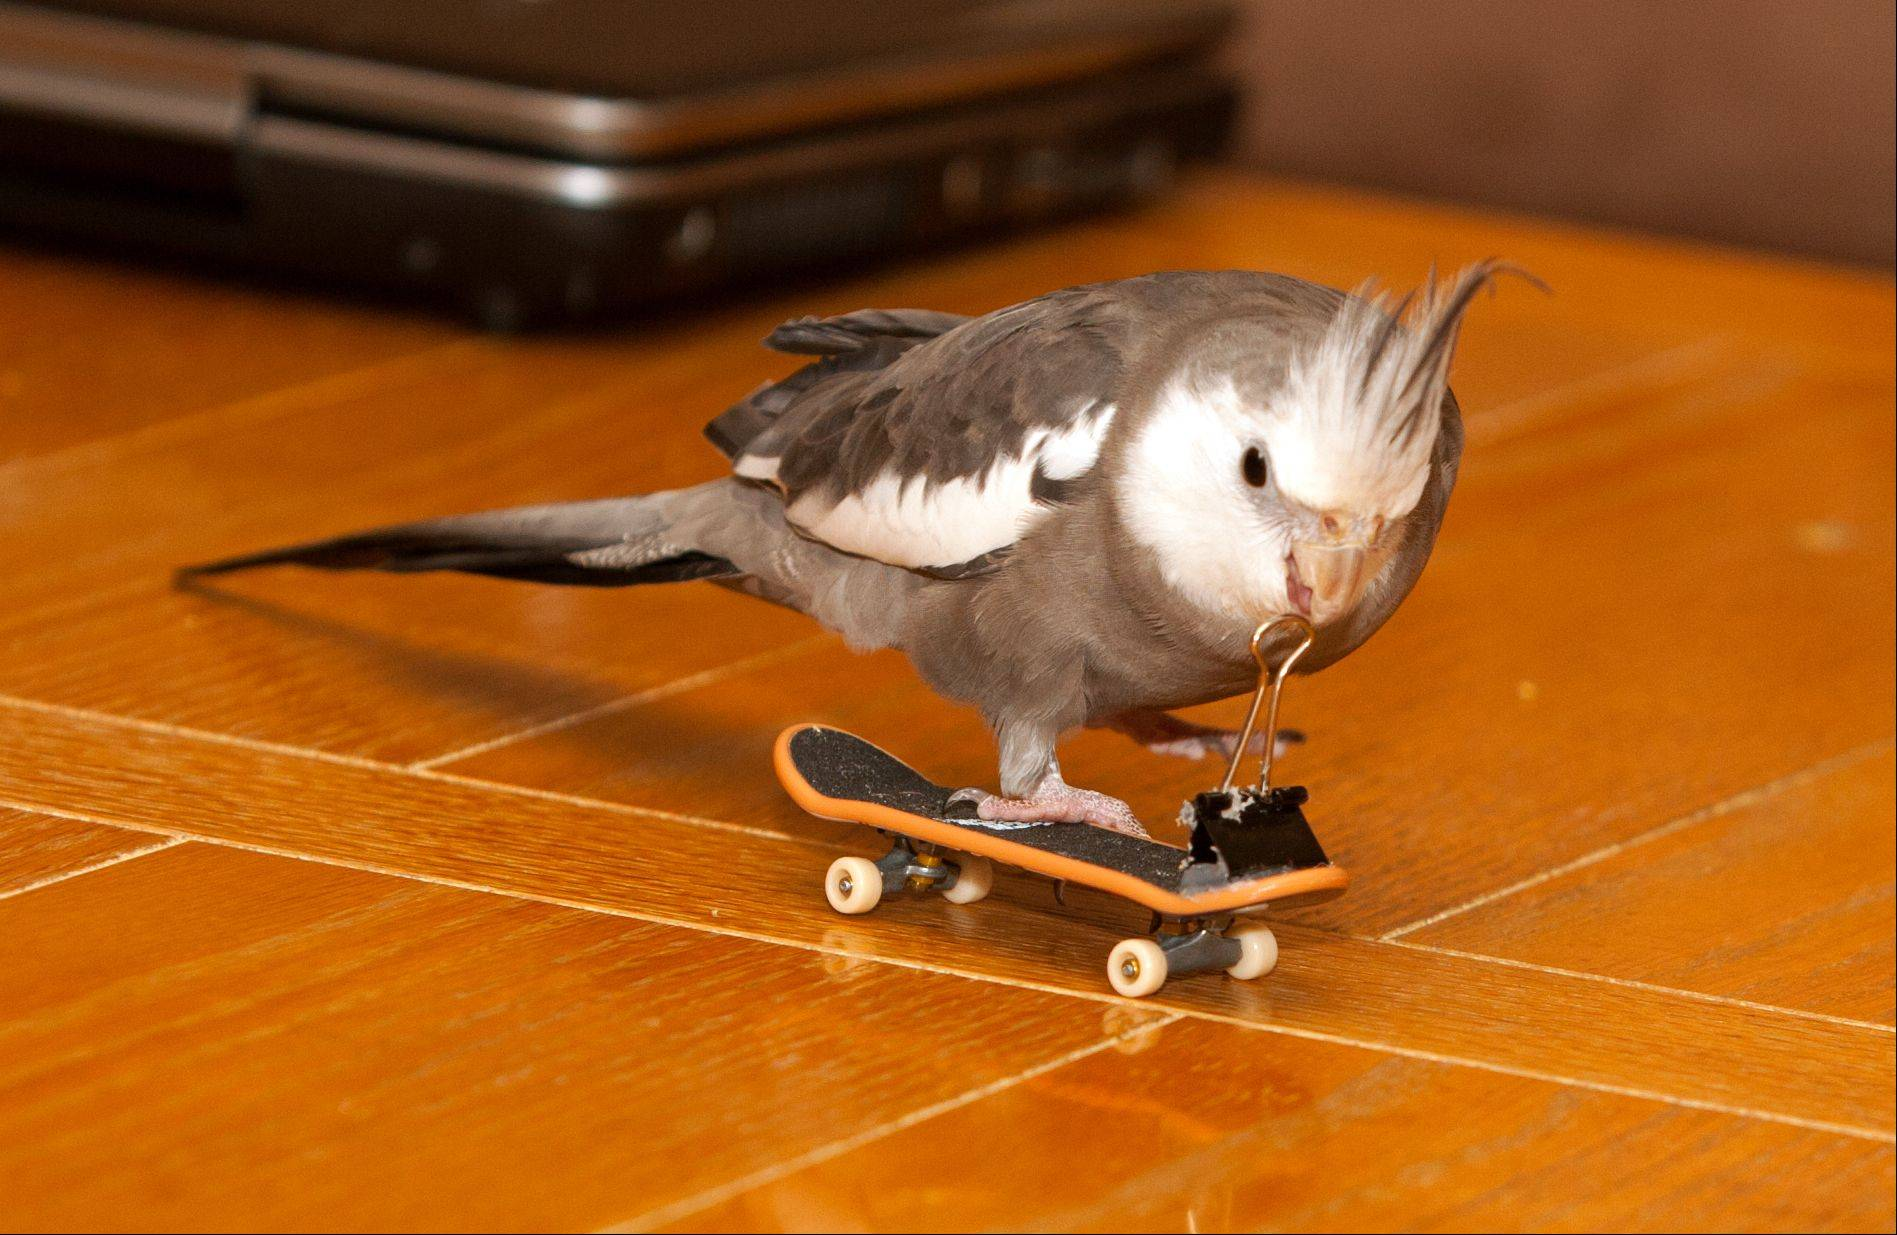 Tango, a skateboard-riding cockatiel, went missing Thanksgiving Day but returned safe and sound to his Lombard home after a harrowing journey.